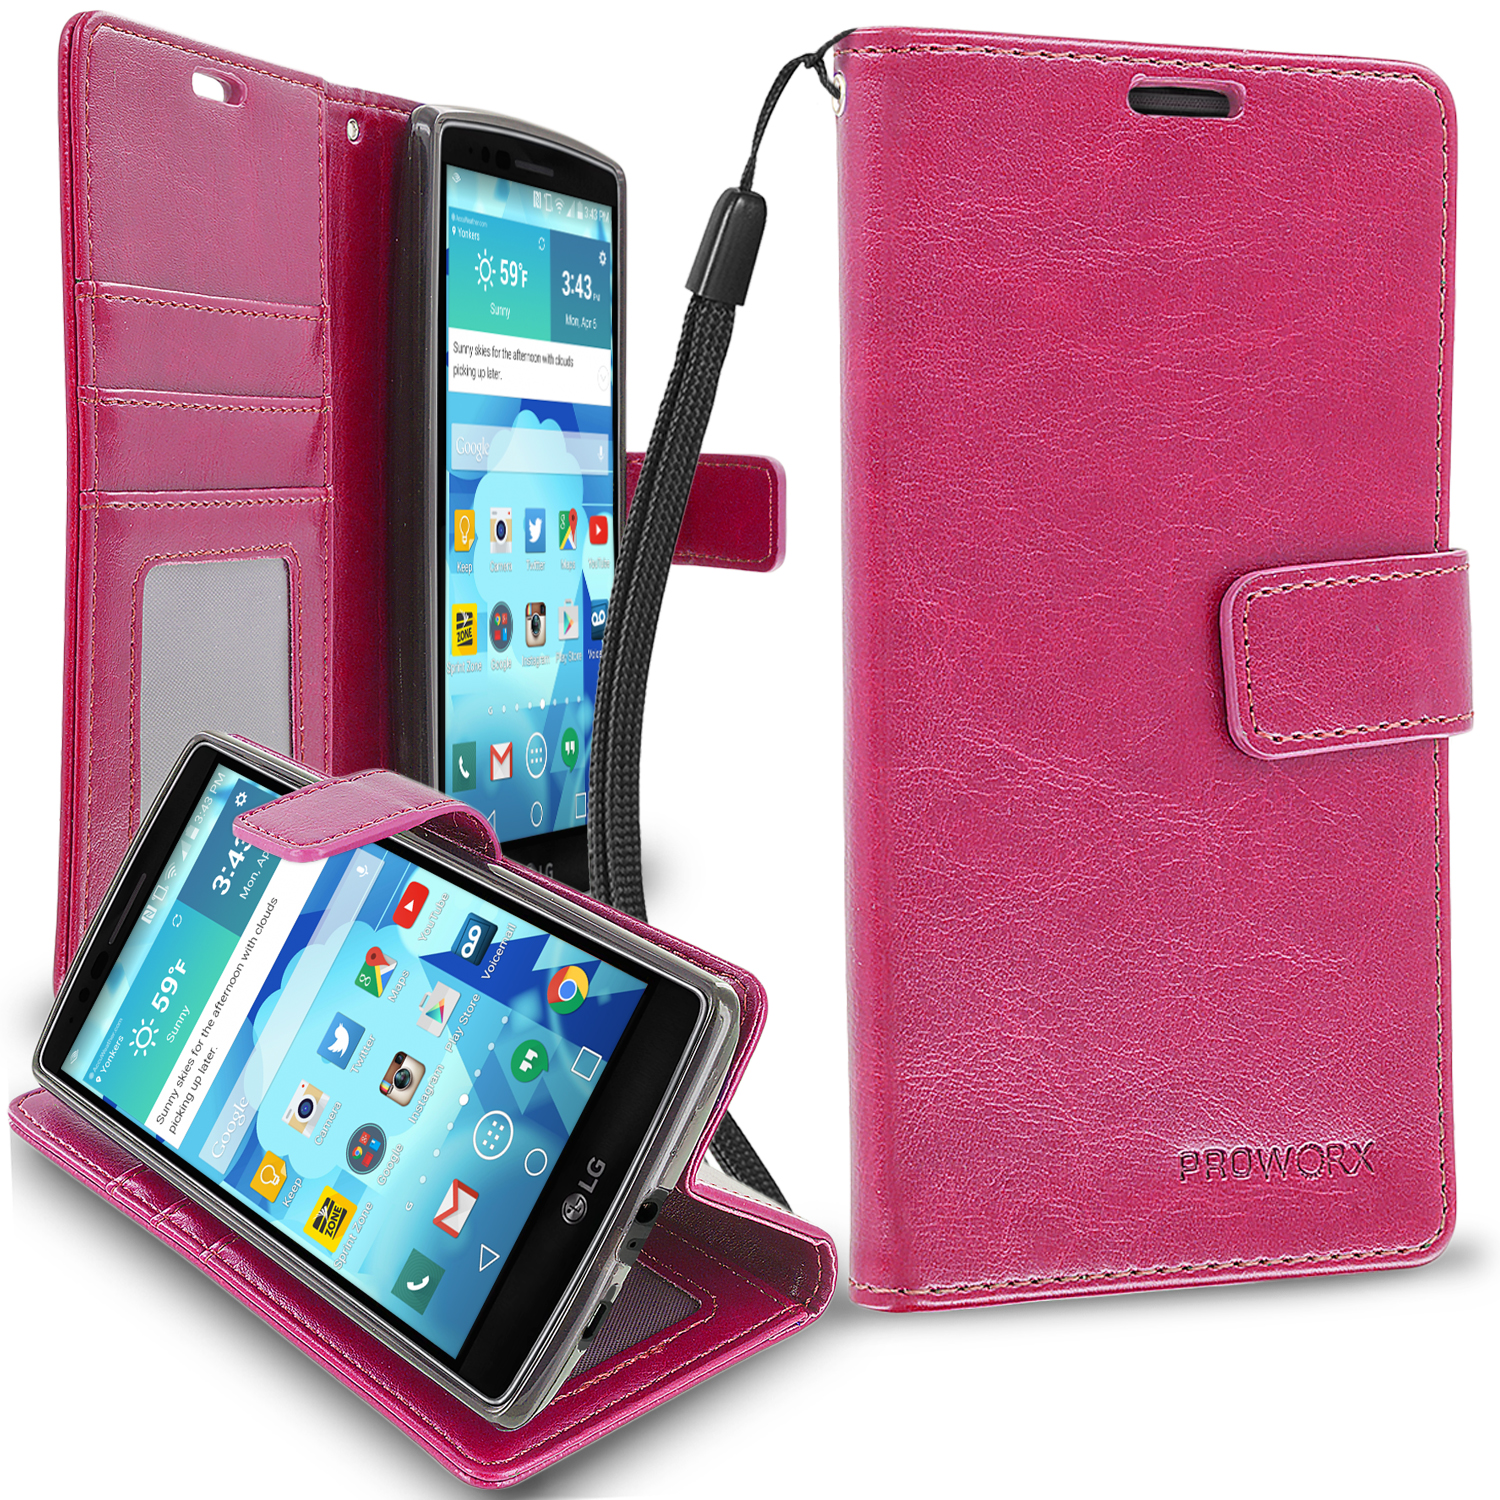 LG G Flex 2 Hot Pink ProWorx Wallet Case Luxury PU Leather Case Cover With Card Slots & Stand